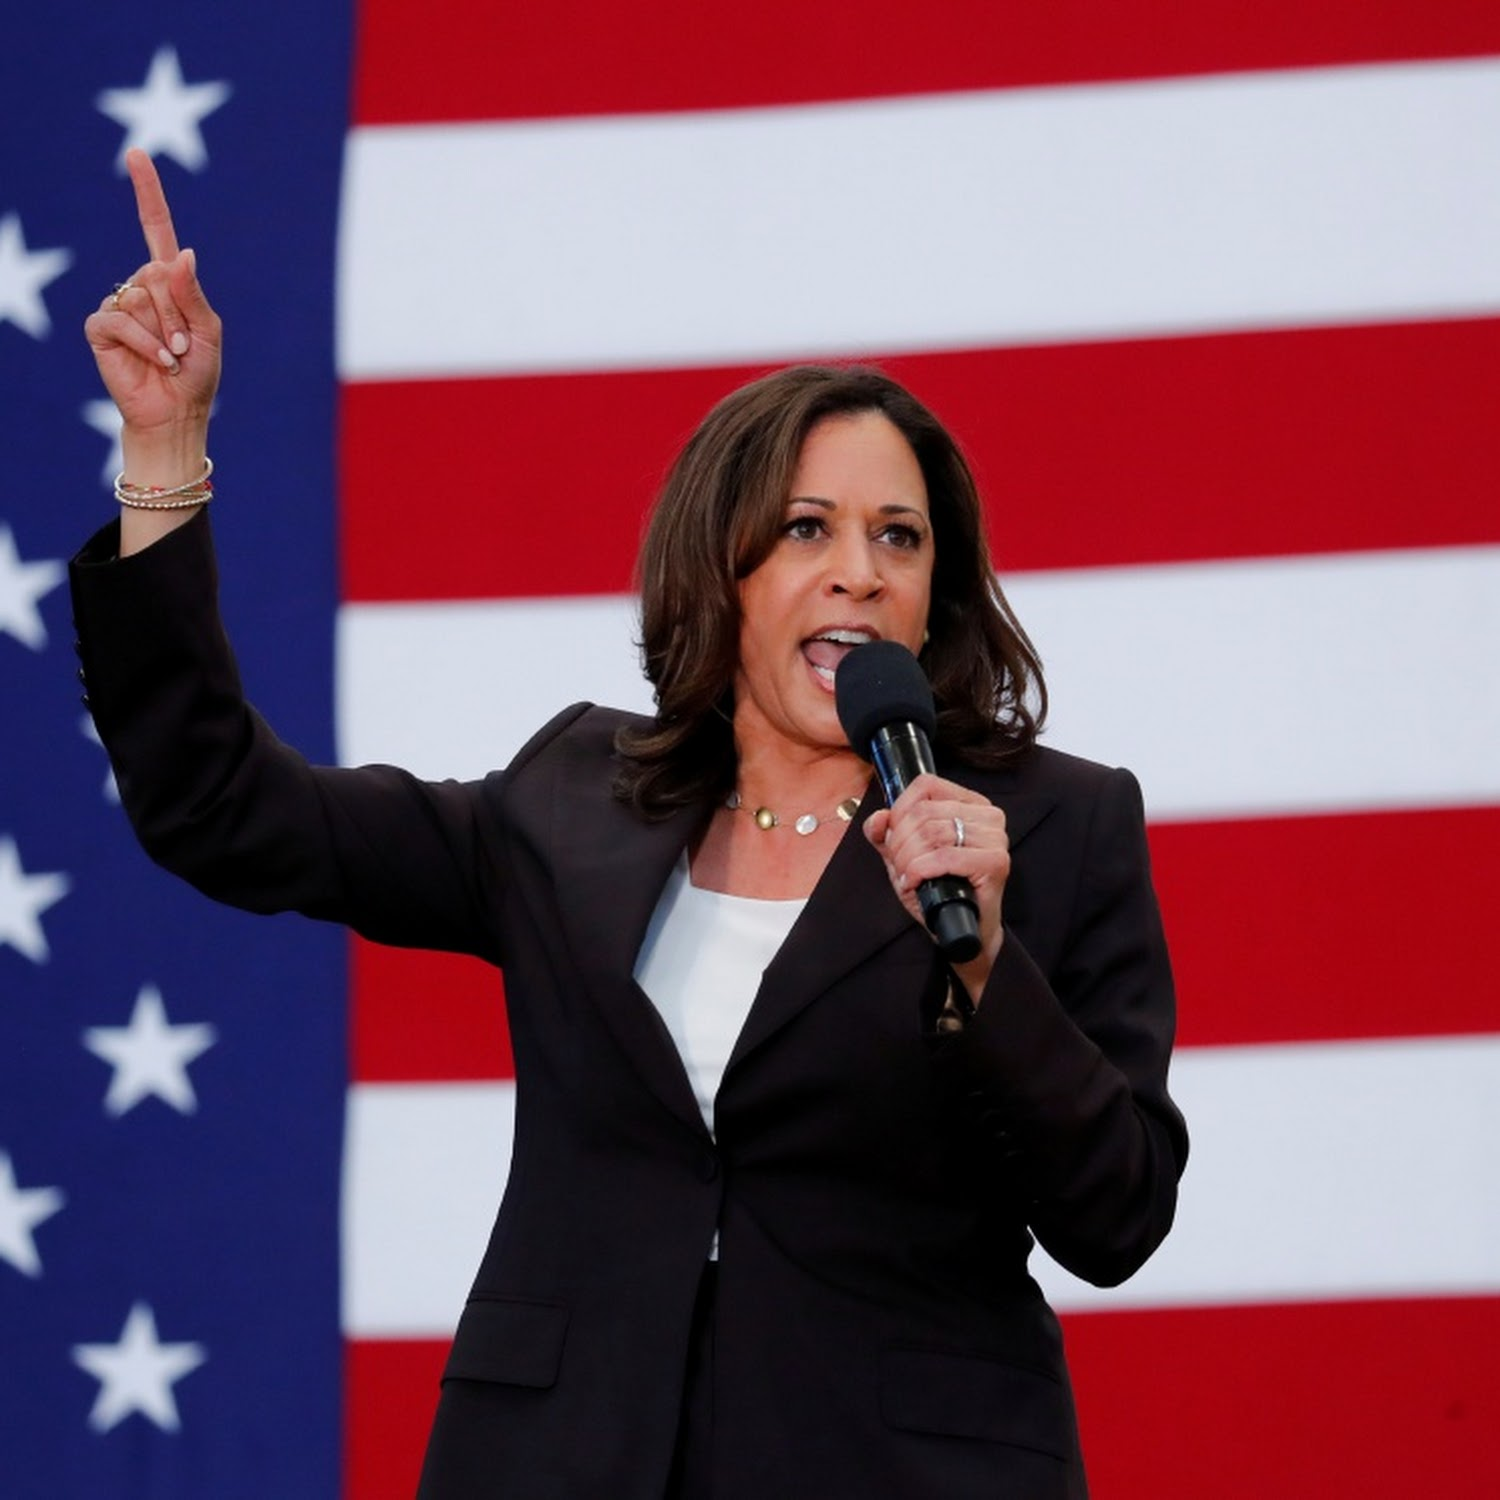 The Good And The Bad Kamala Harris Brings To The Biden Ticket